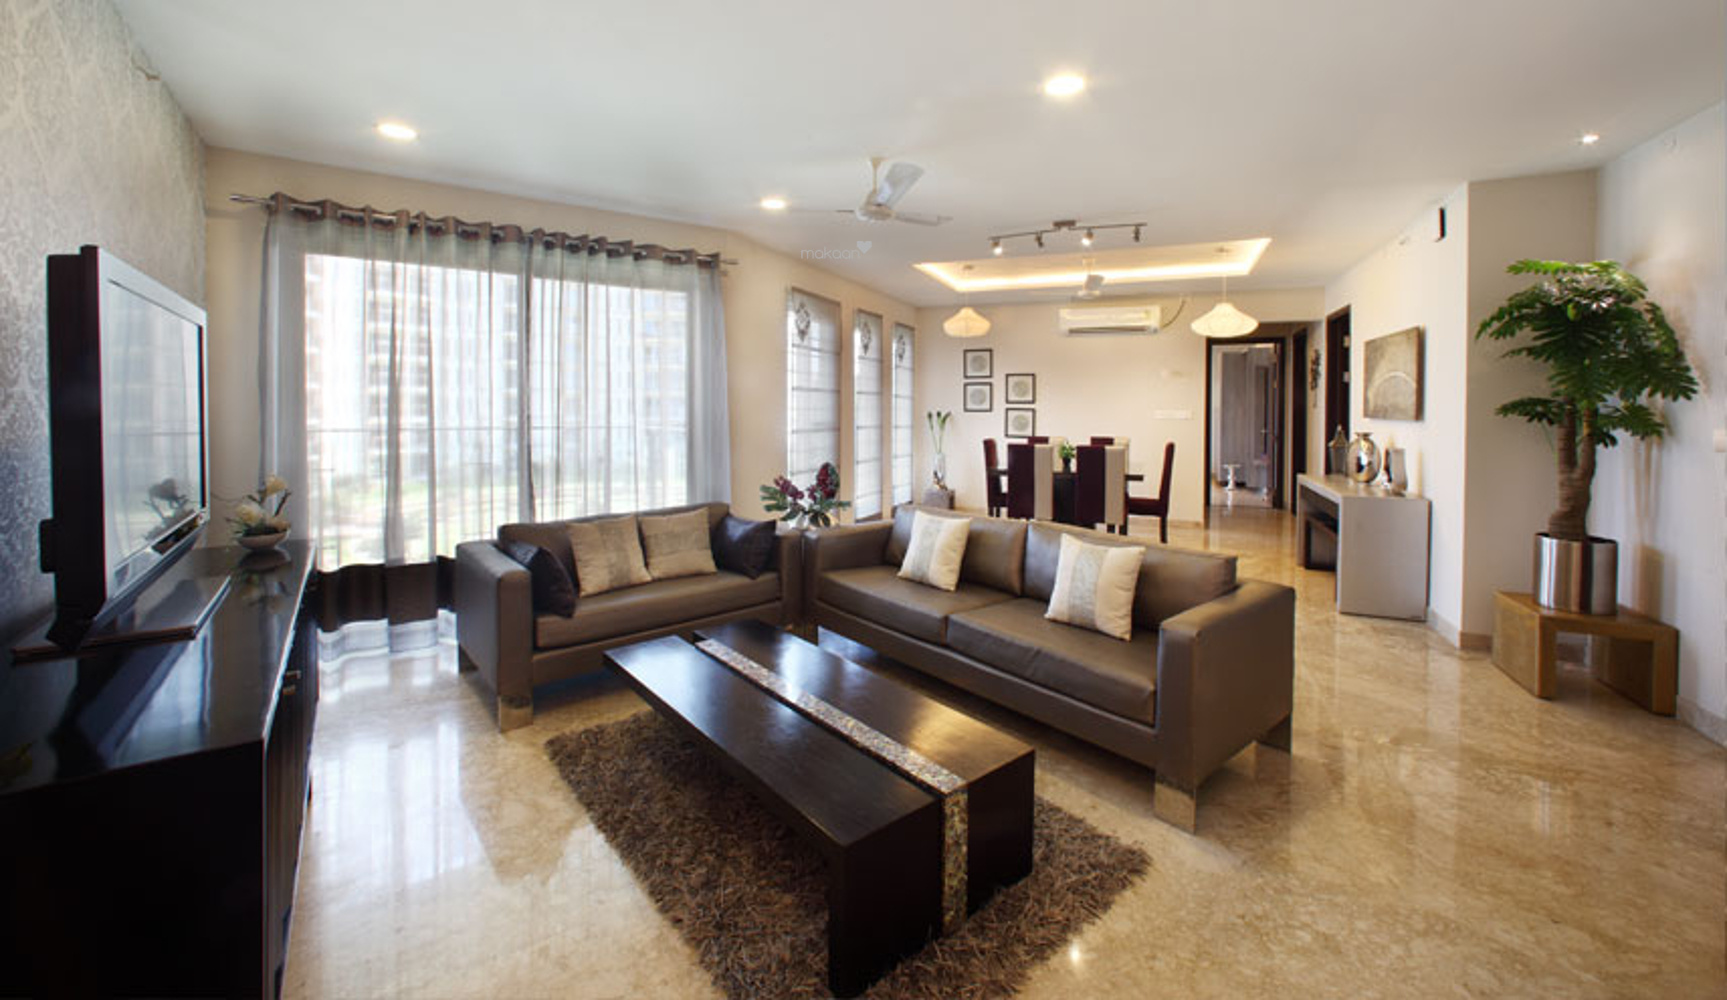 2660 Sq Ft 4 BHK Under Construction Property Apartment For Sale At Rs 3.46  Crore In Ozone Metrozone In Anna Nagar, Chennai